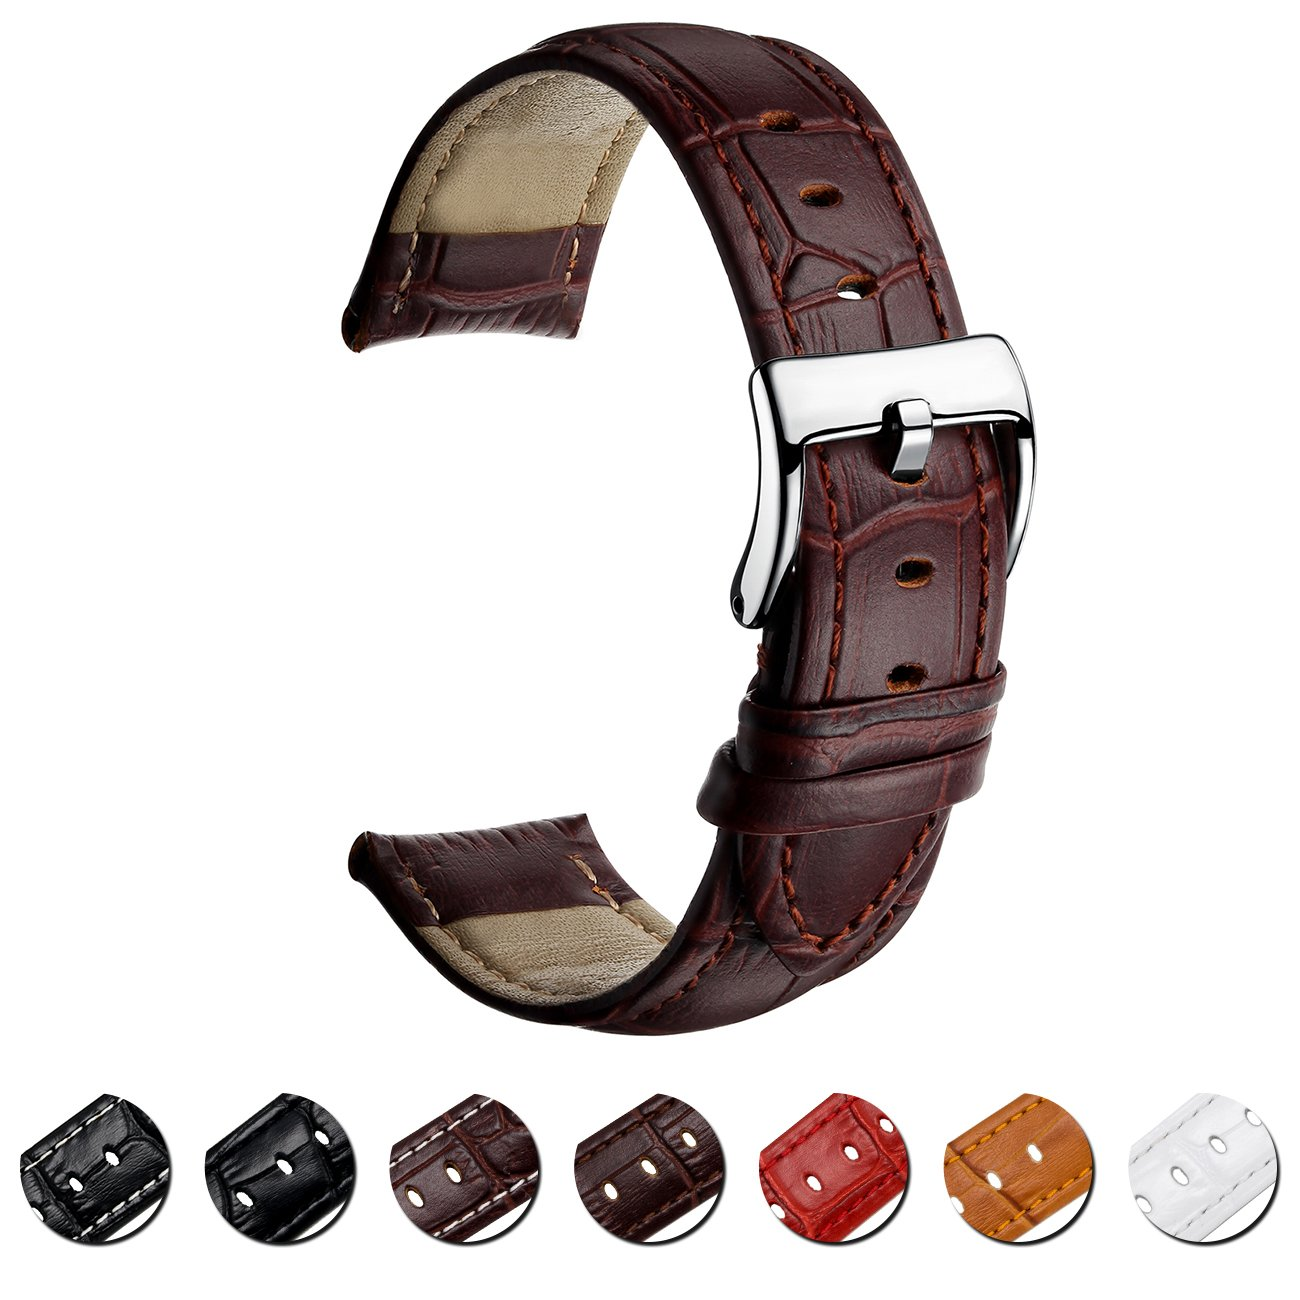 MEGALITH Leather Watch Band Top Calf Grain Genuine Leather Watch Strap 16mm 18mm 20mm 22mm Bands for Men and Women by MEGALITH (Image #10)